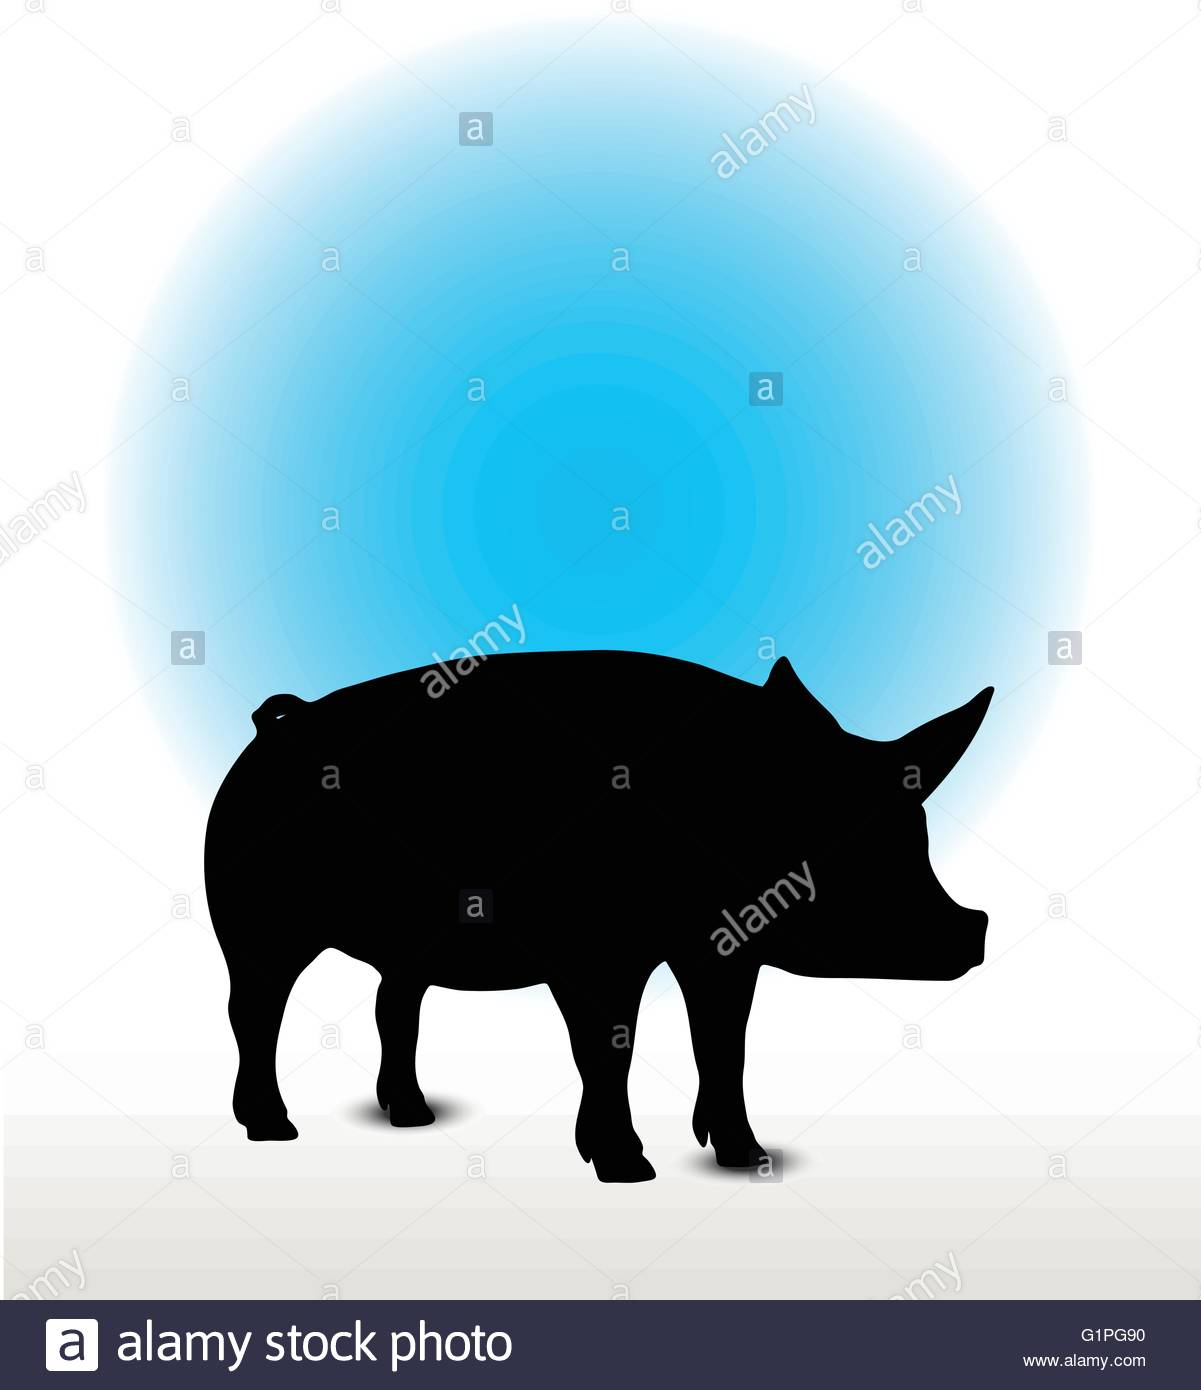 1201x1390 Vector Image, Pig Silhouette, In Curl Tail Pose, Isolated On White